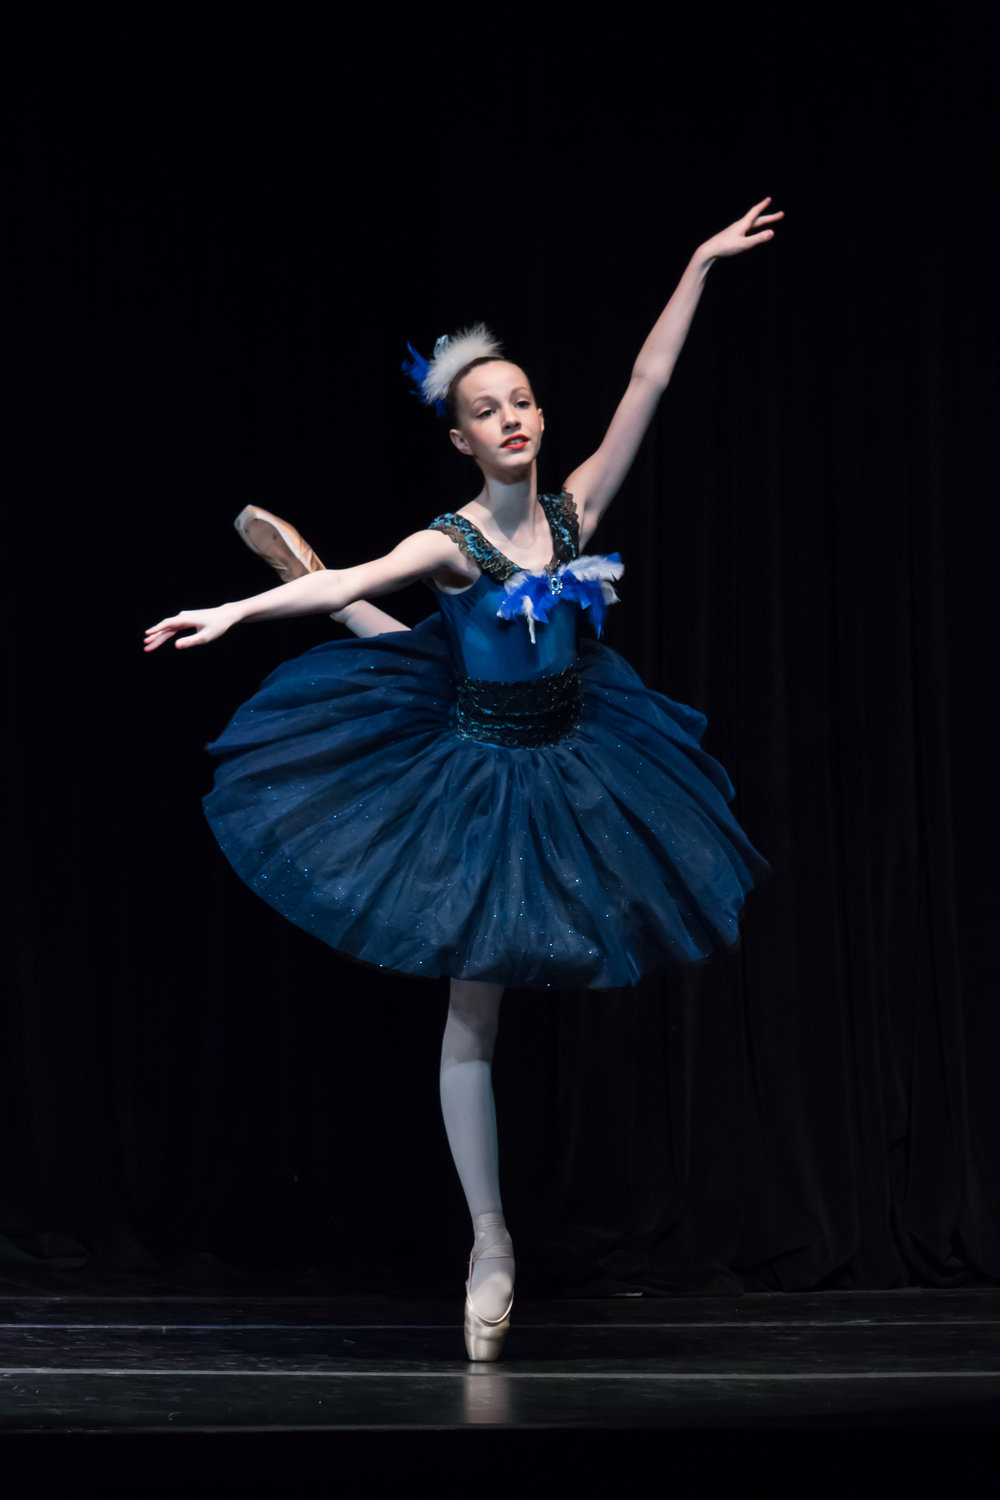 Spring Performance, Texas Youth Ballet Conservatory